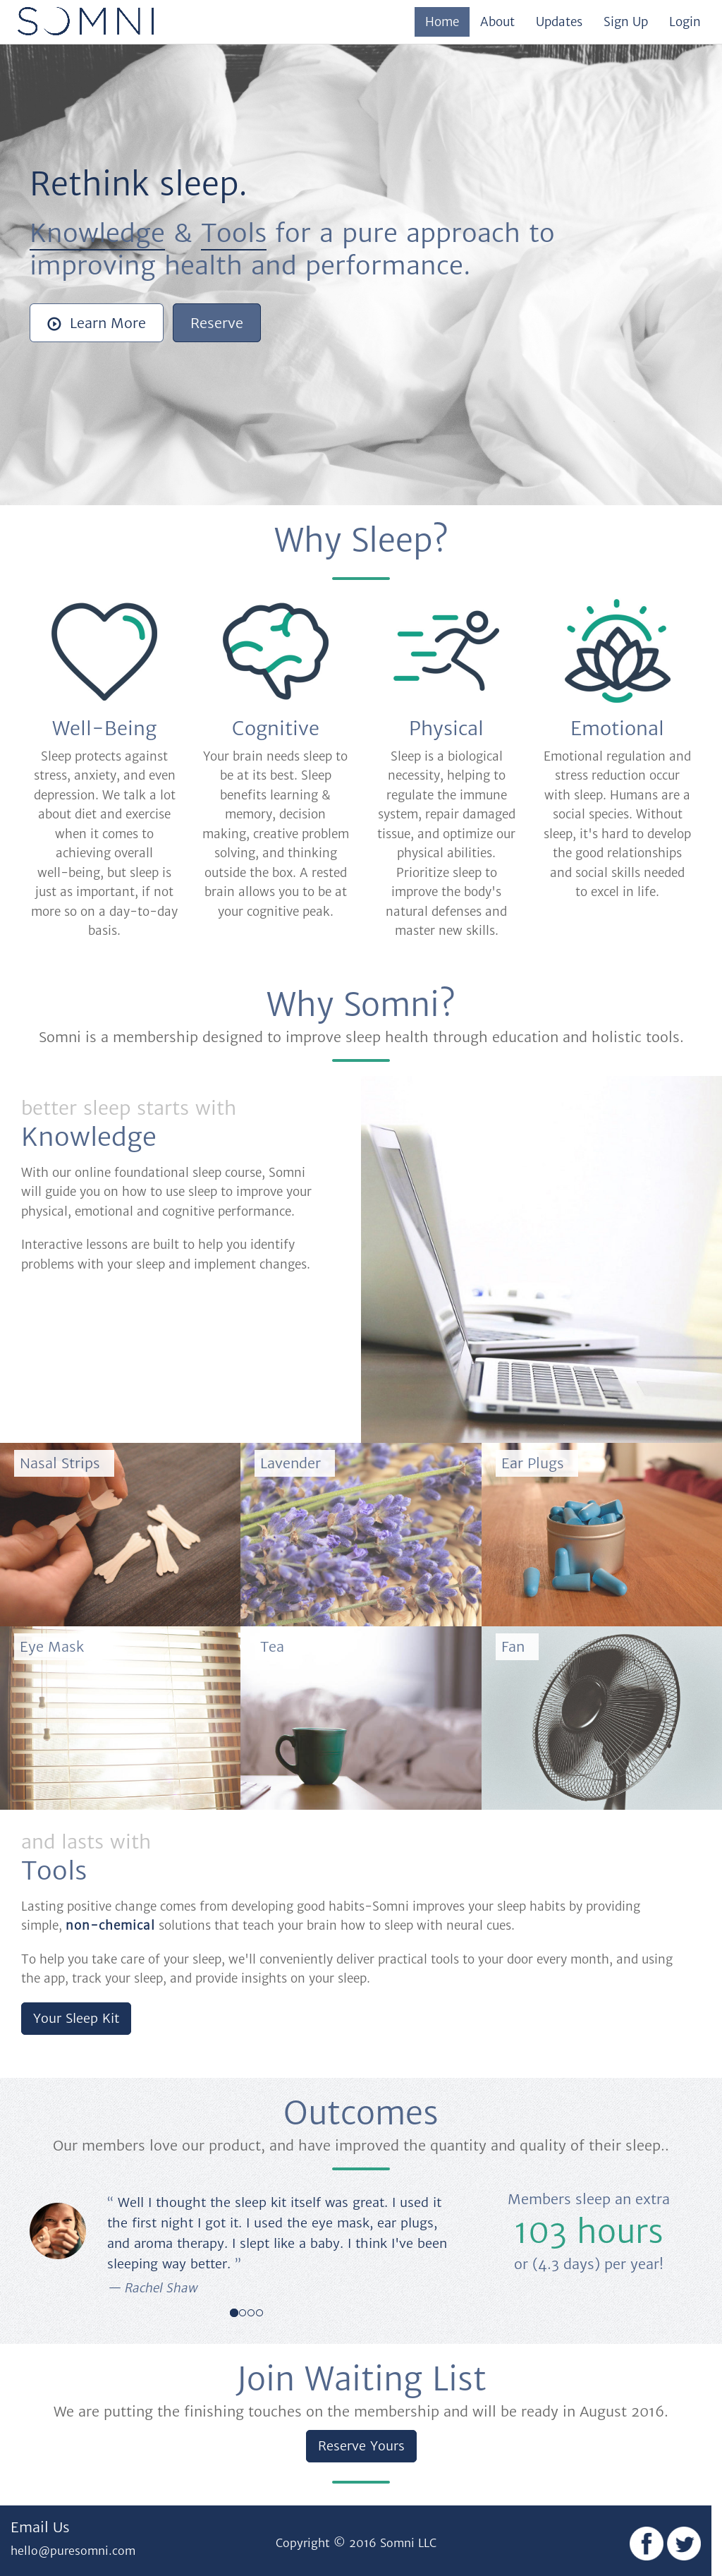 Somni Competitors, Revenue and Employees - Owler Company Profile